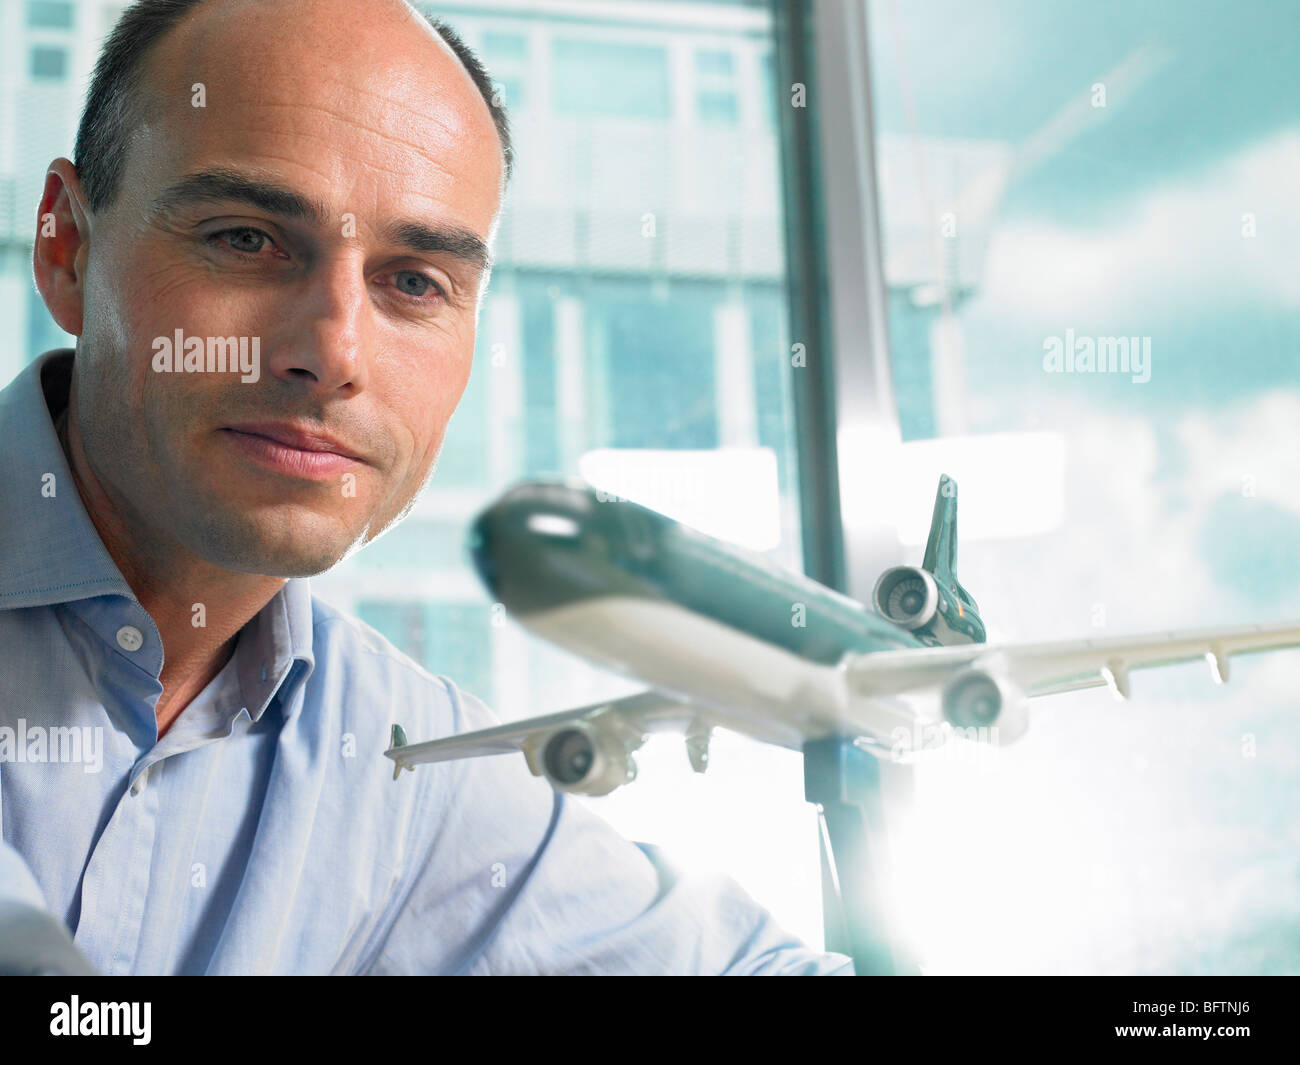 Man looking at a reduced plane model - Stock Image